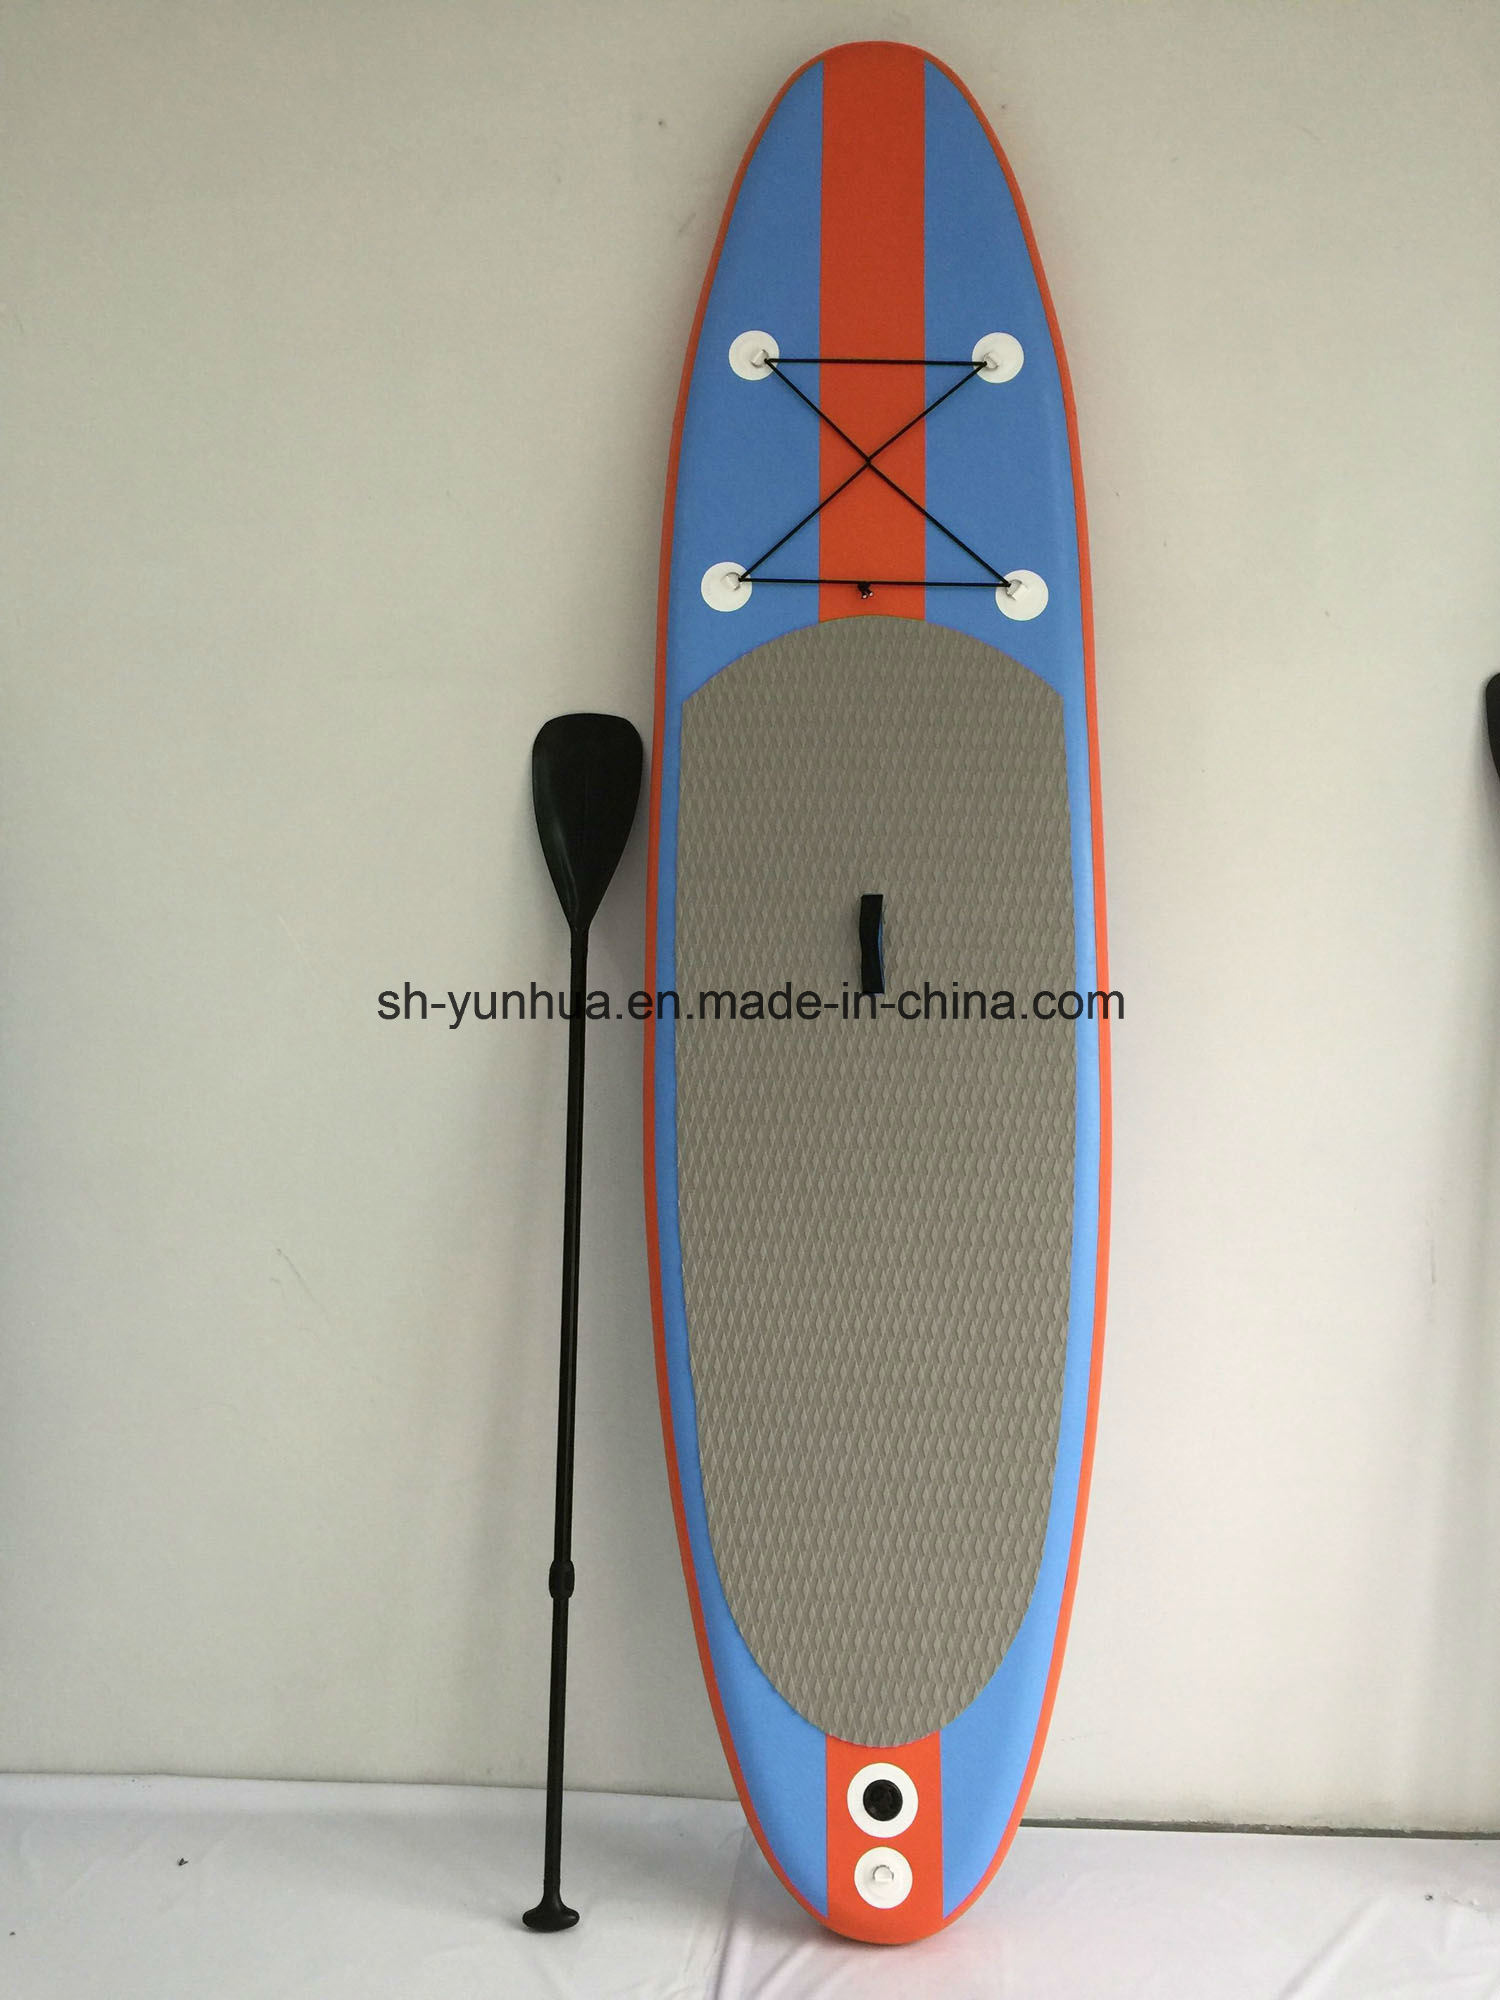 f77d439e9 Placa Sup inflável  Stand up Paddle Board PVC Prancha –Placa Sup inflável  Stand  up Paddle Board PVC Prancha fornecido por TAIXING BRAVO TOY PRODUCT CO.